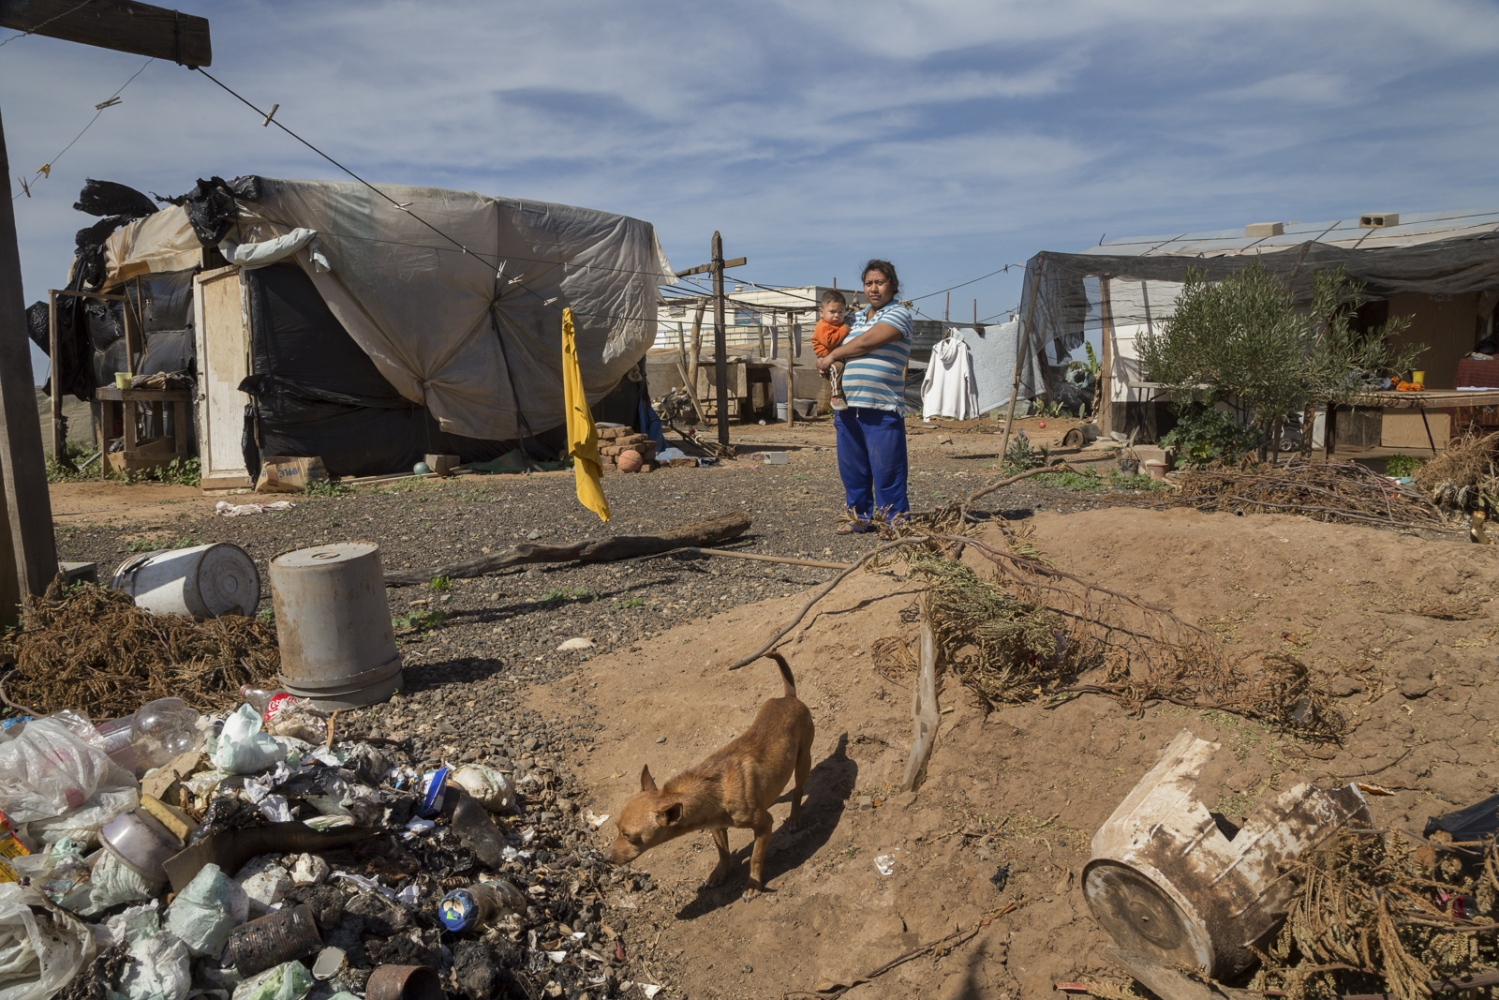 Aurora Ramirez, 20, and her son Mario Alberto, 18 months, stand in the yard next to their house made of plastic and cardboard. Farmworkers live in areas of difficult access where large families are crammed into small rooms in makeshift houses. They live without electricity or running water and their front yards are often full of dirt, trash and burnt garbage.